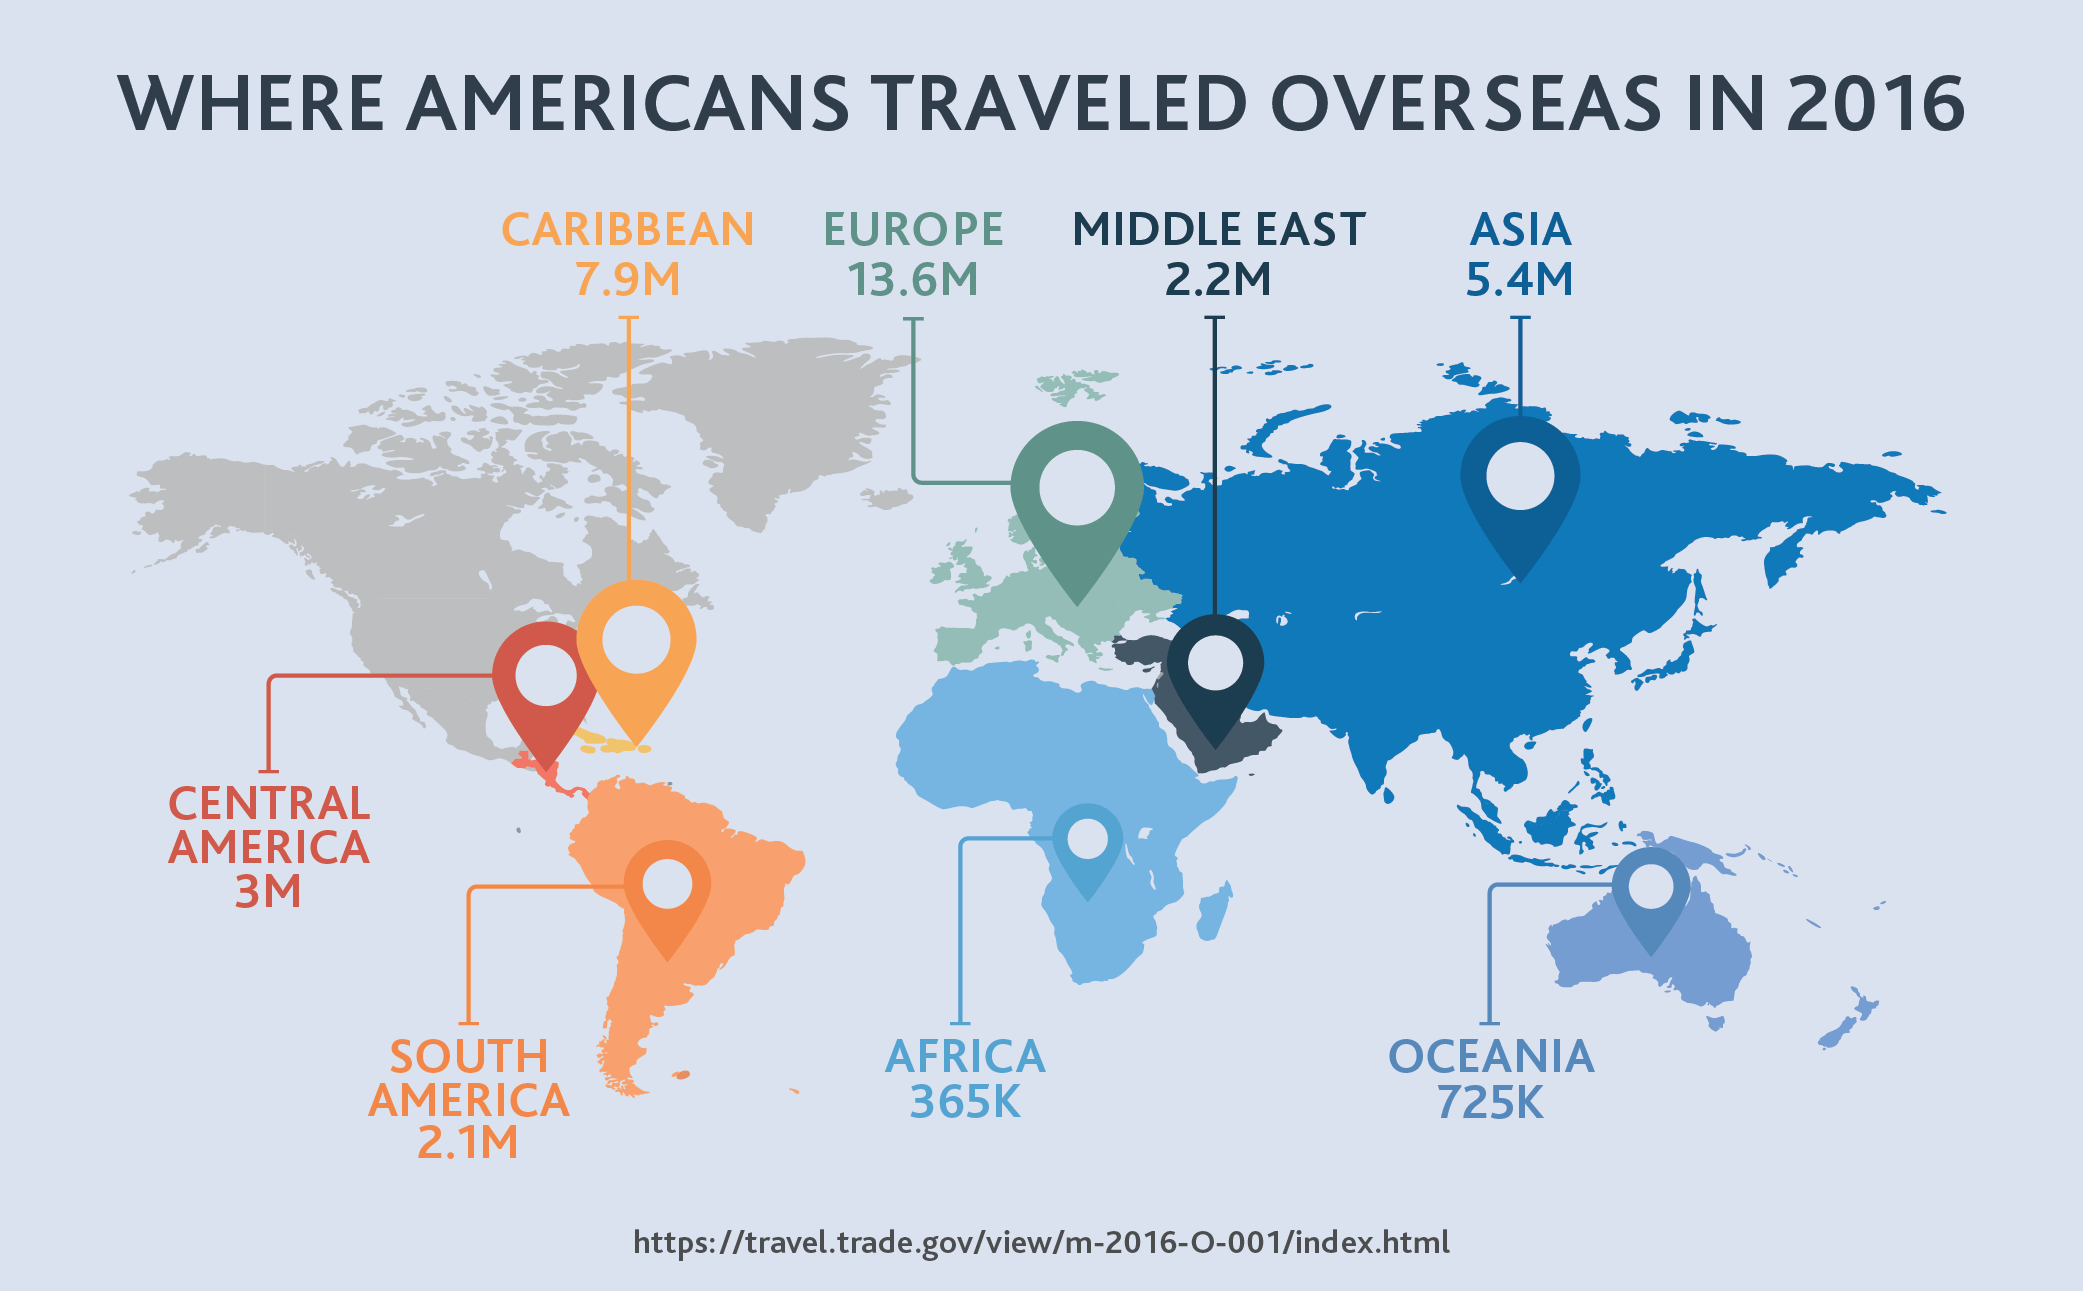 Where Americans Traveled Overseas In 2016